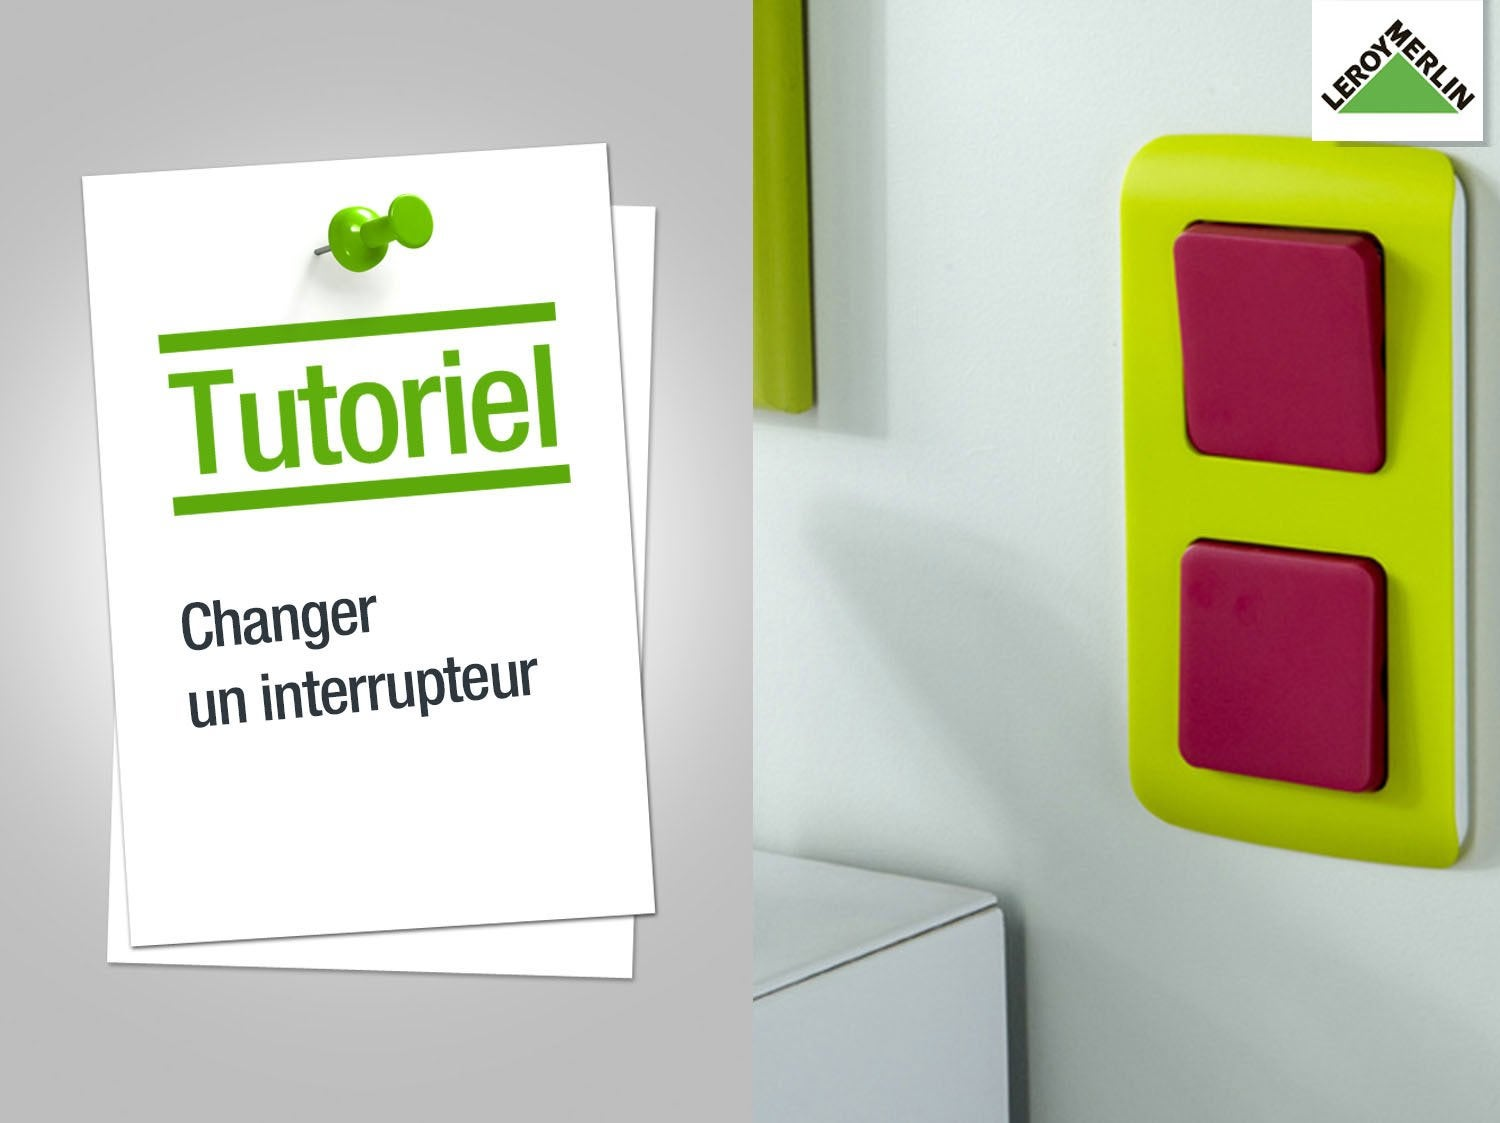 Installer un interrupteur mural 28 images comment for Interrupteur mural 3 positions